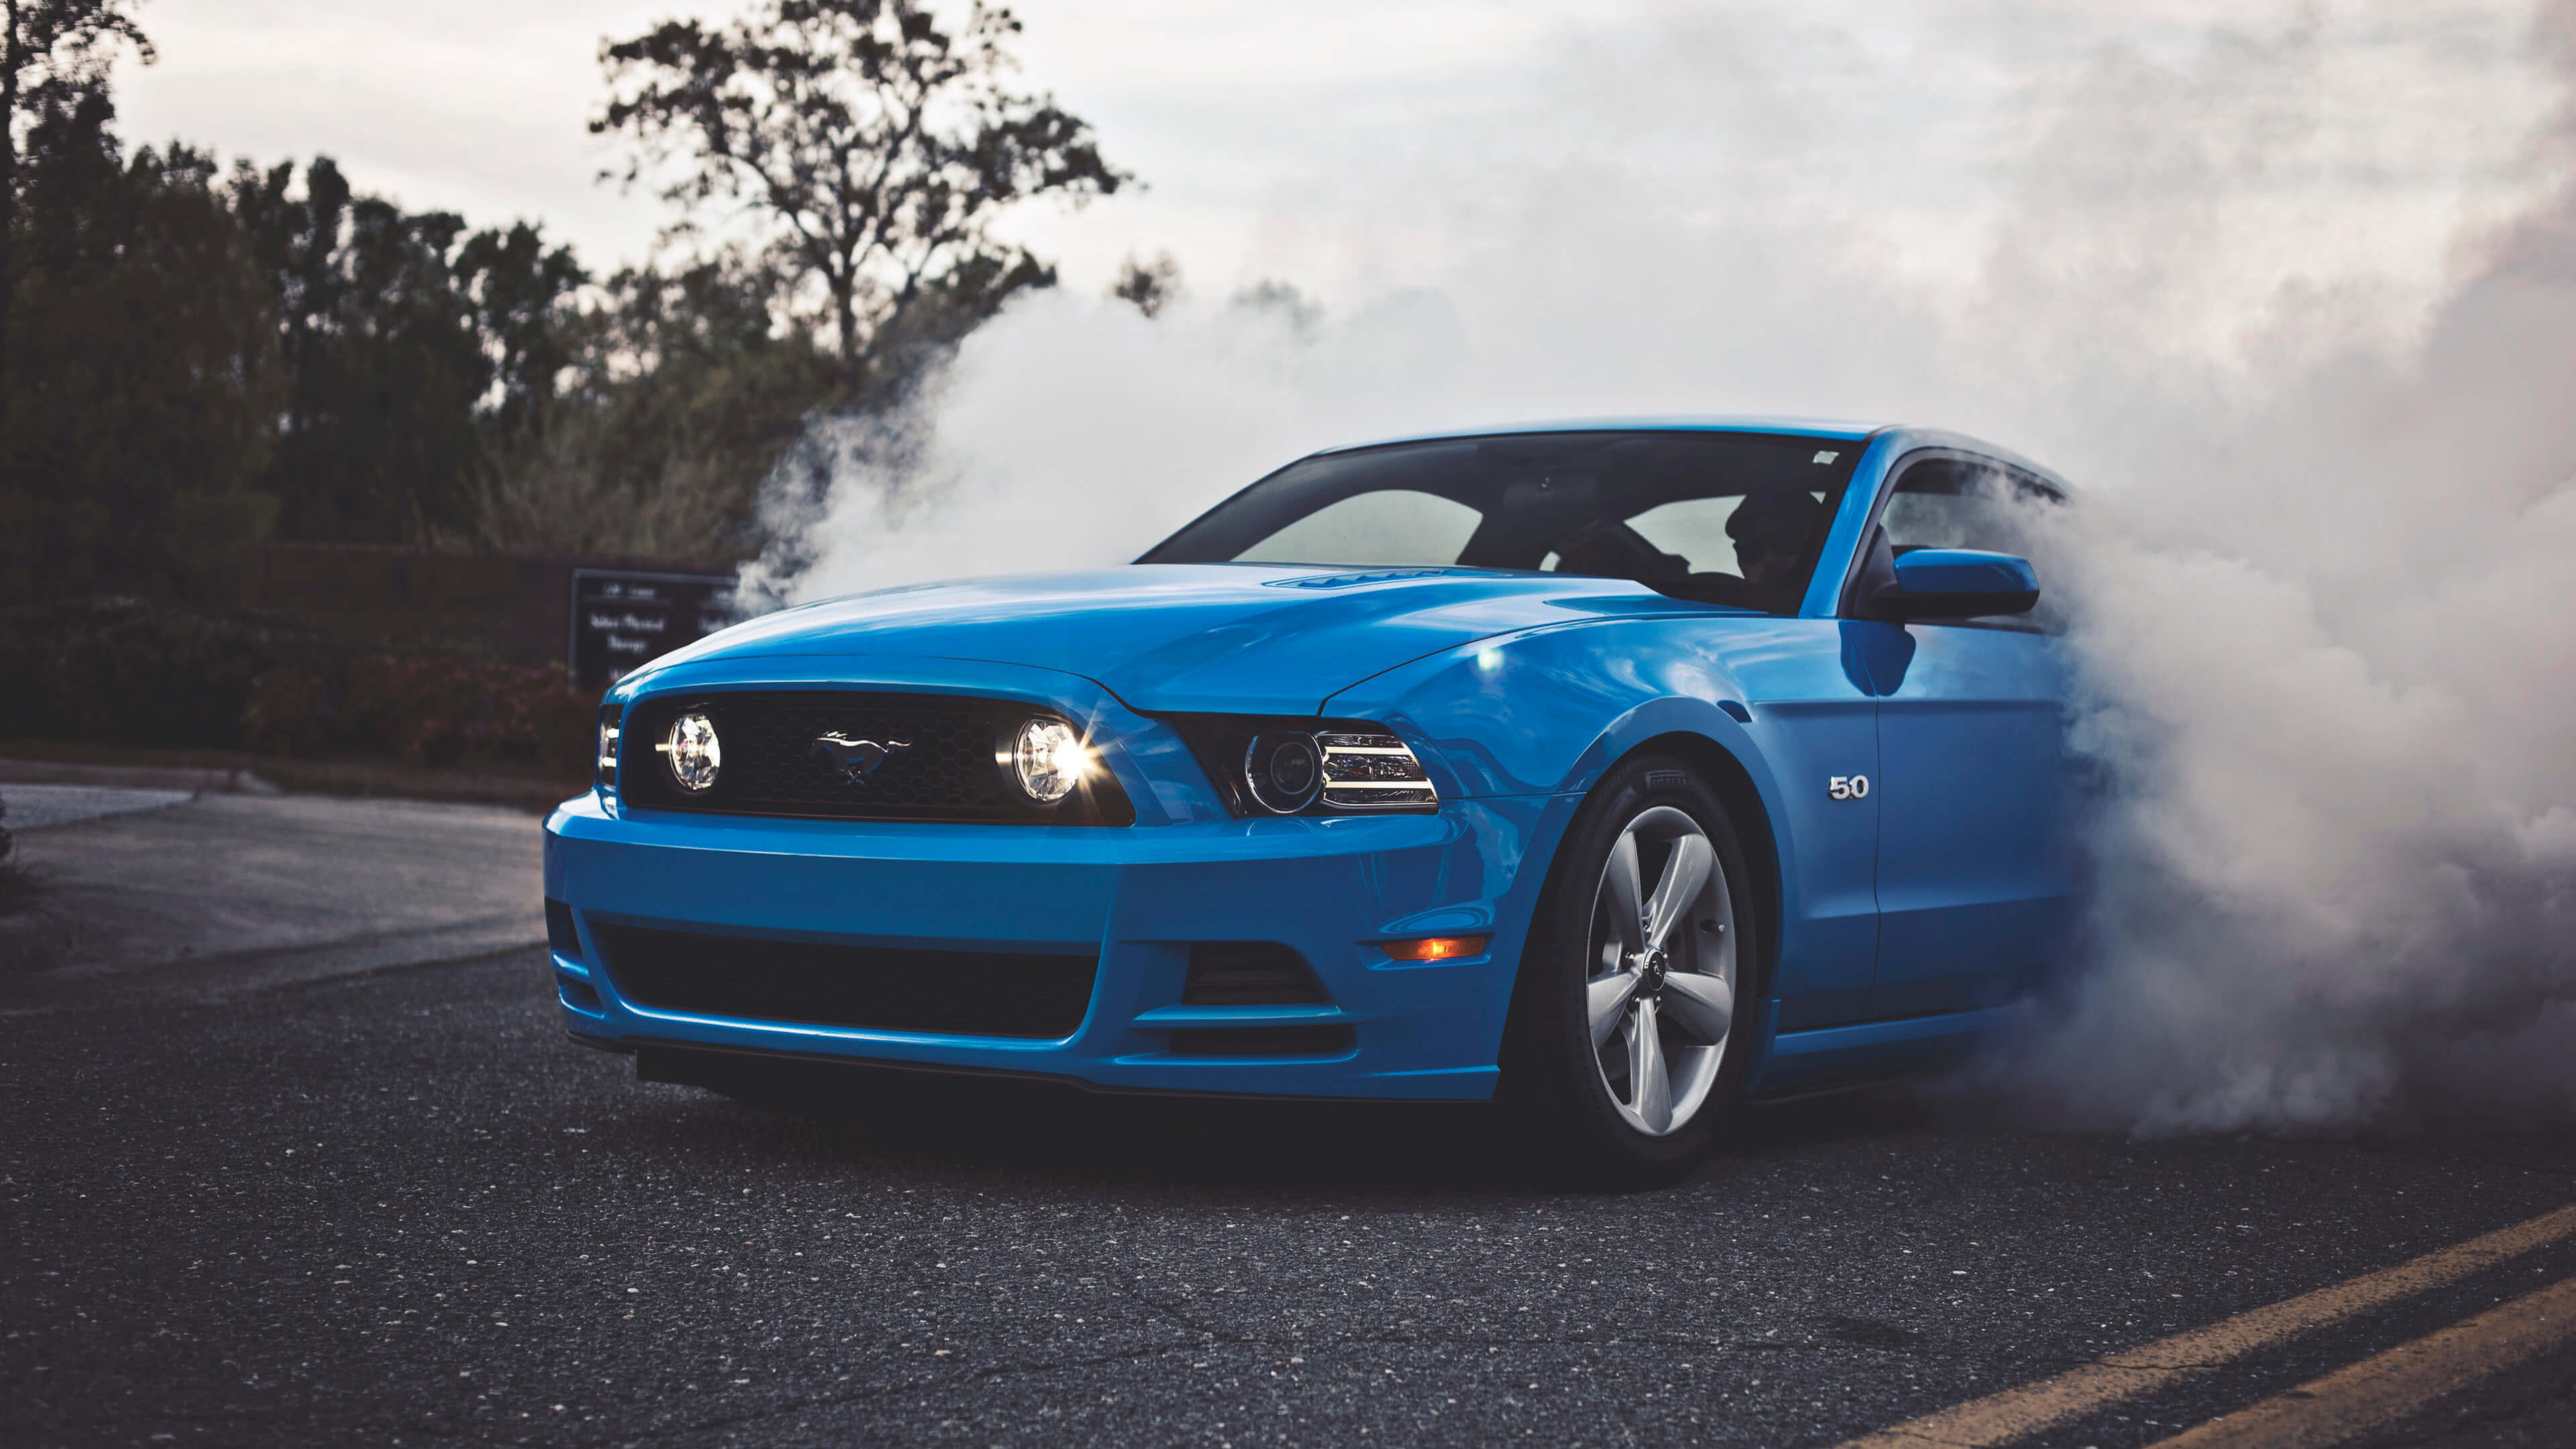 Shelby Ford Trucks >> Blue Ford Shelby Mustang UHD 4K Wallpaper | Pixelz